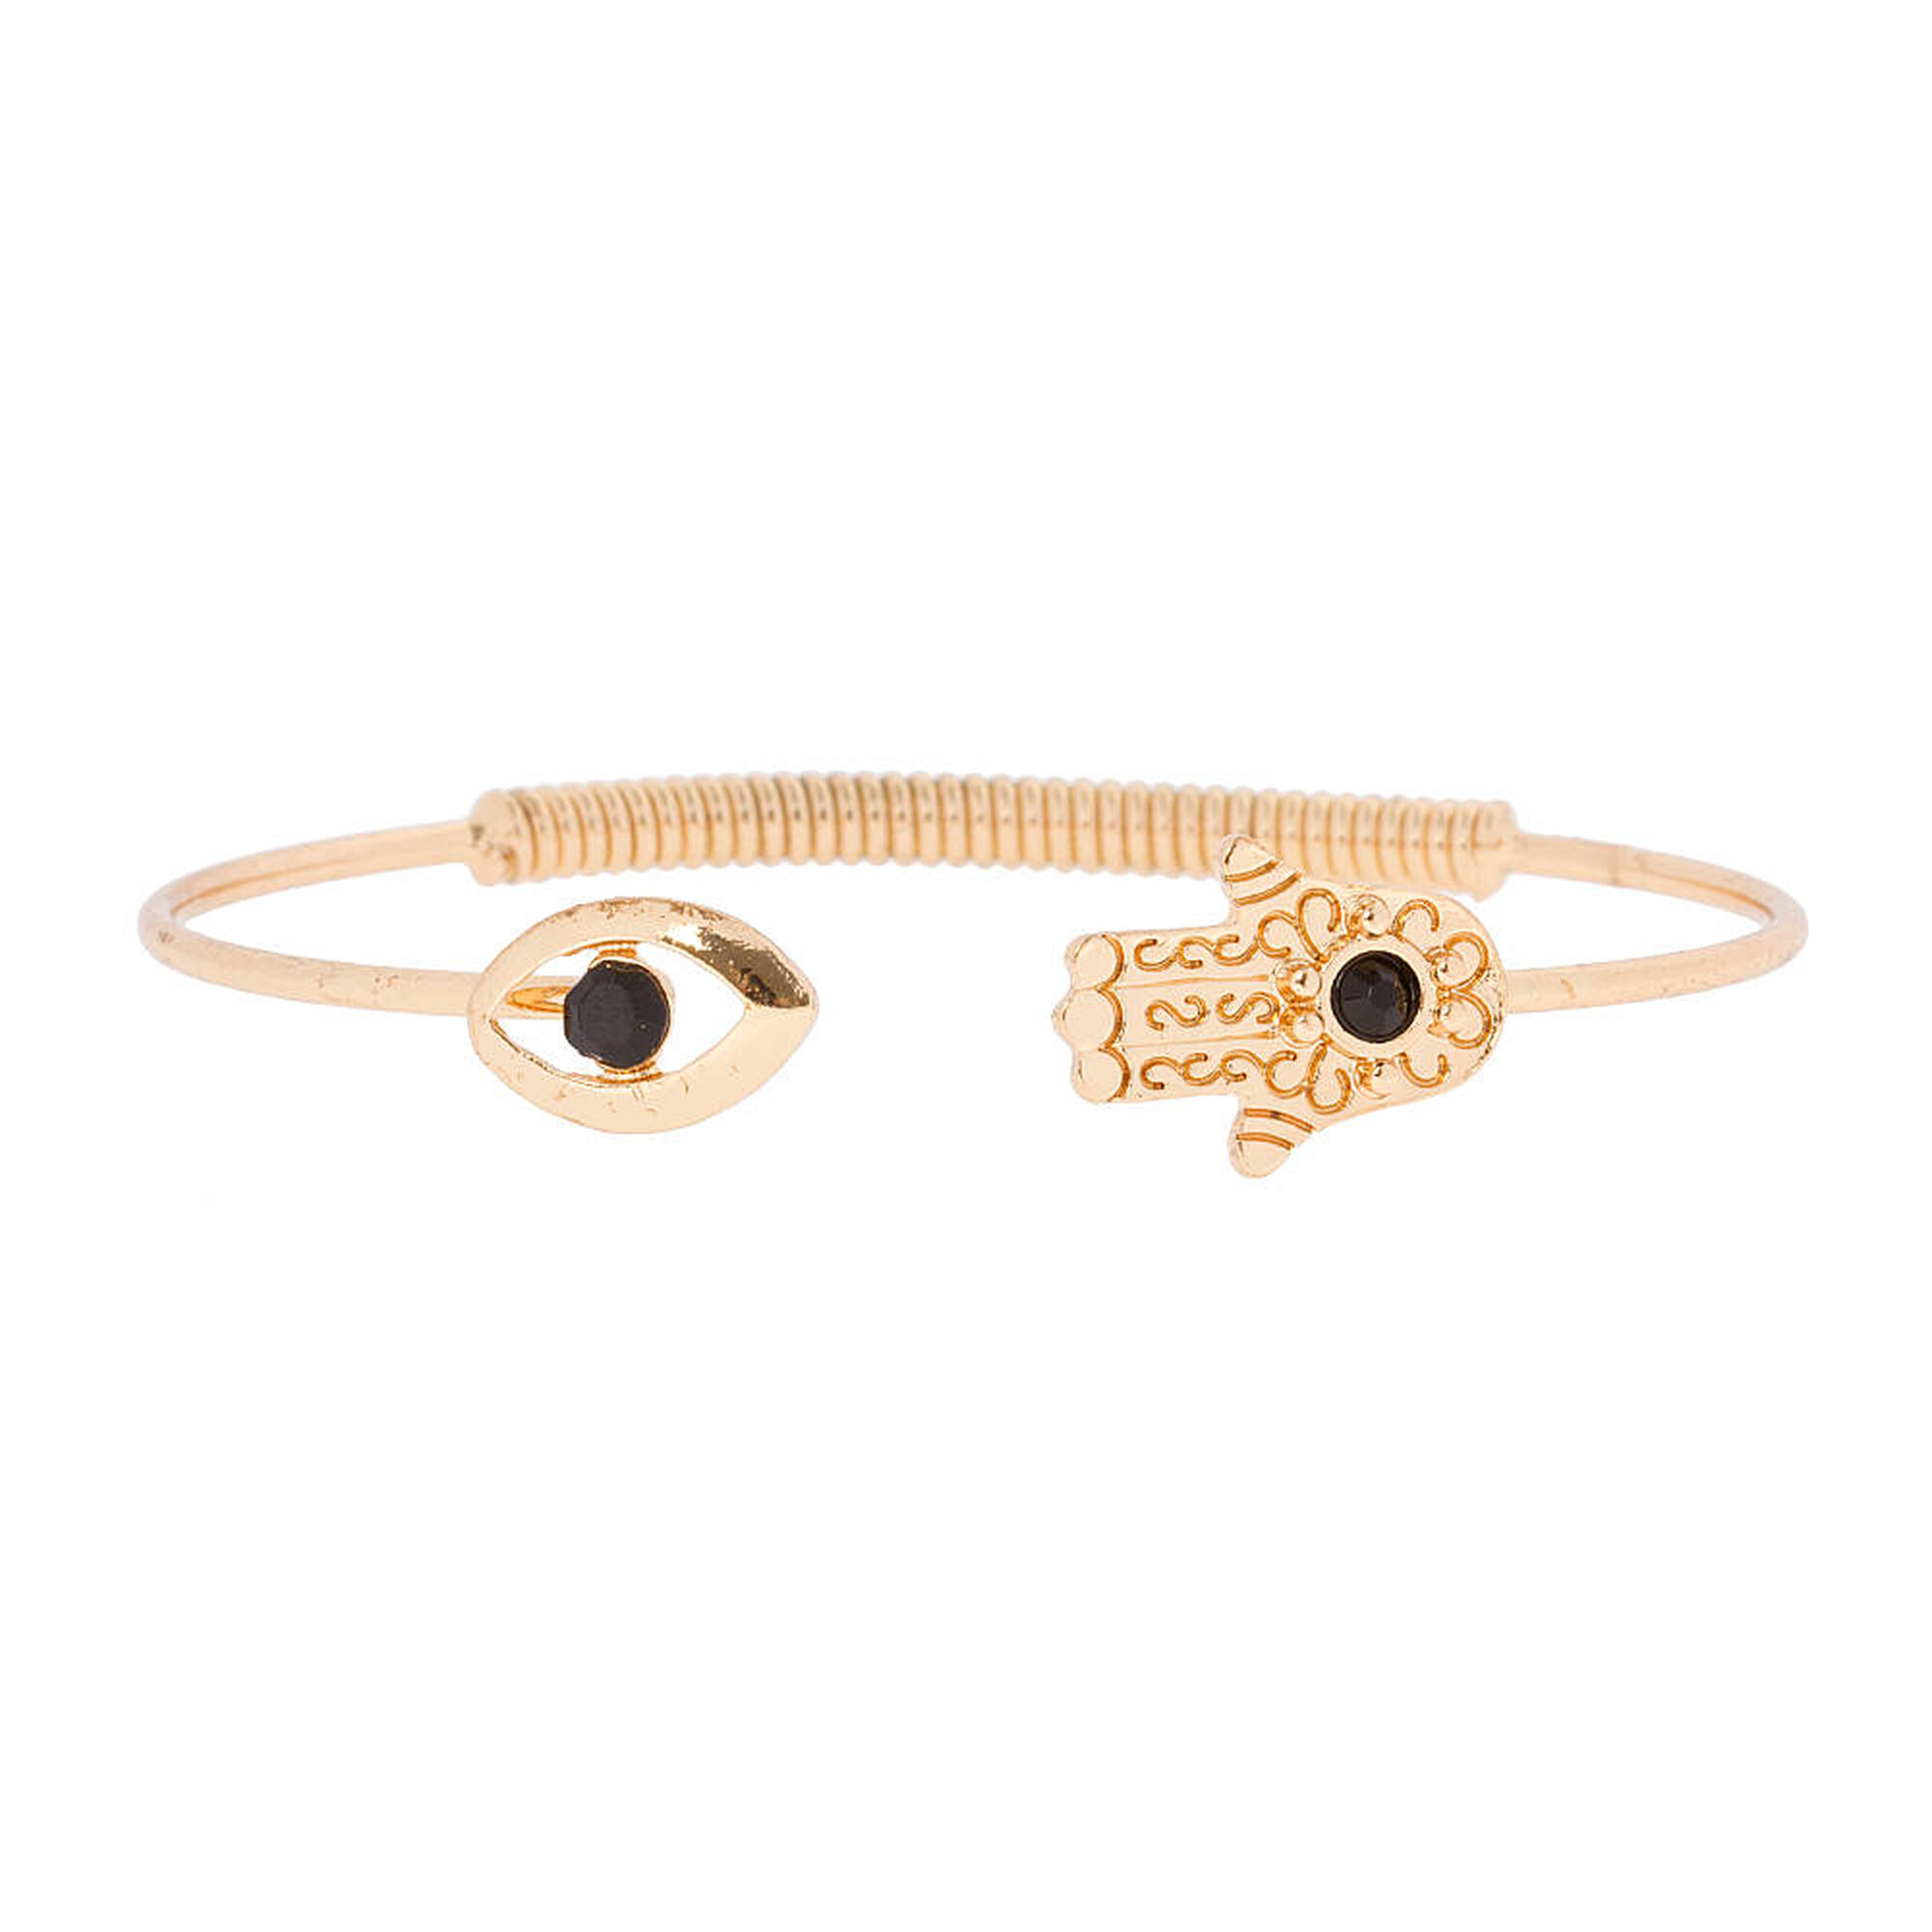 links vermeil bracelet timeless london gold cuff gb en bracelets of women rose cuffs bangles hires